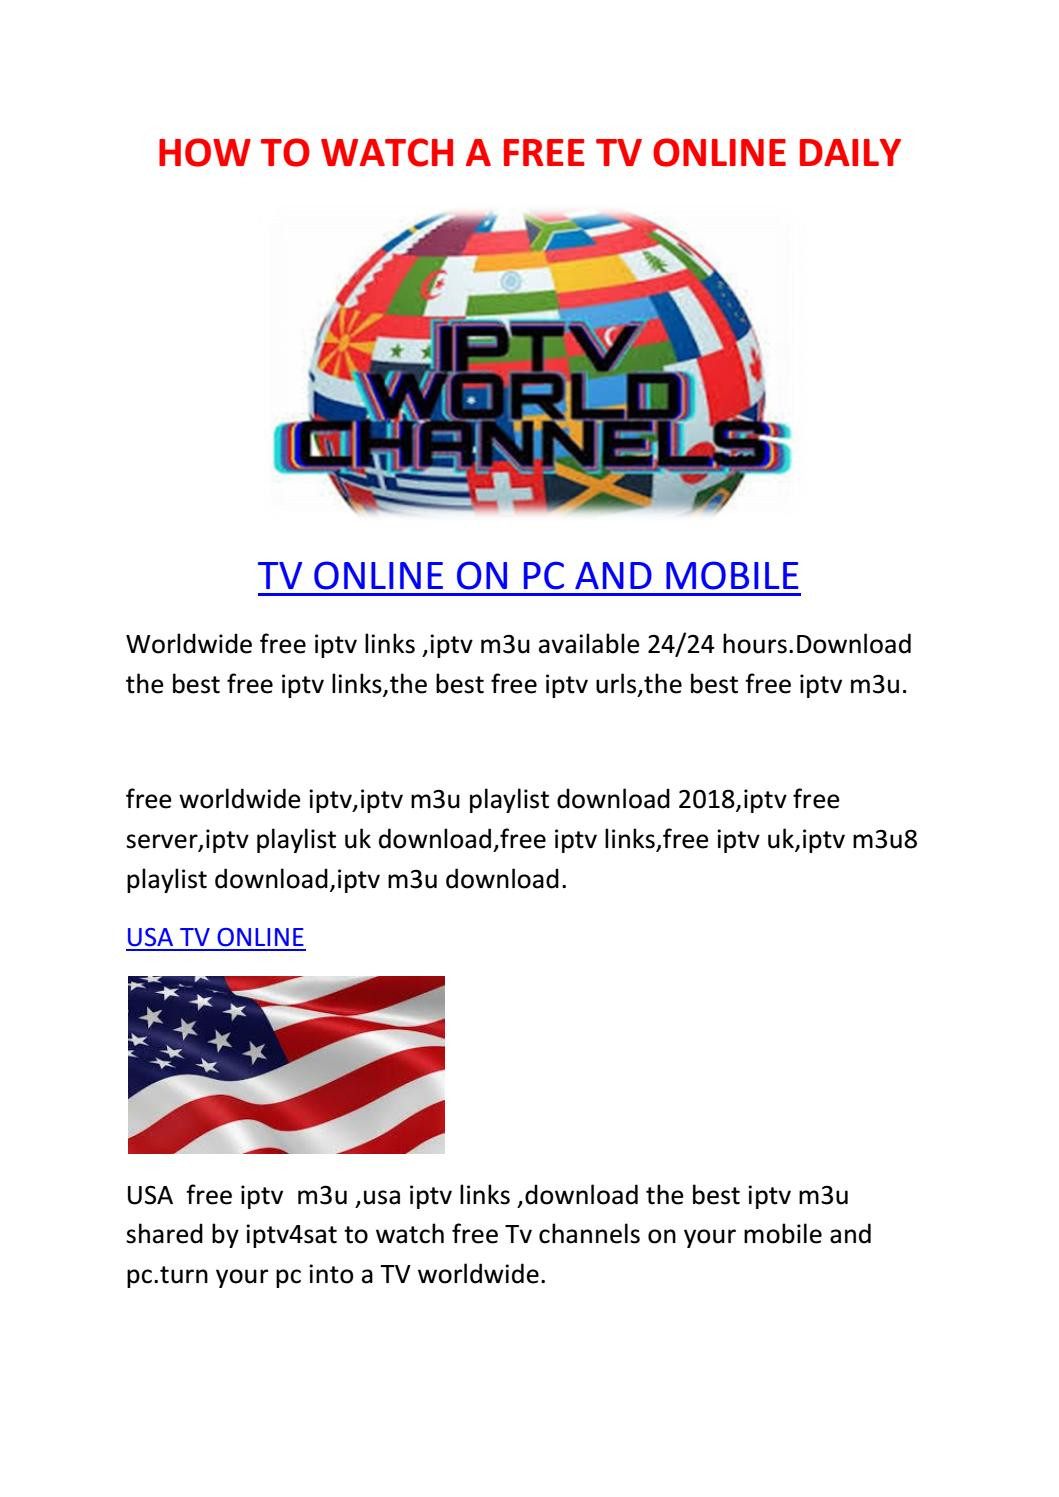 HOW TO WATCH A FREE TV ONLINE DAILY by SMART IPTV - issuu